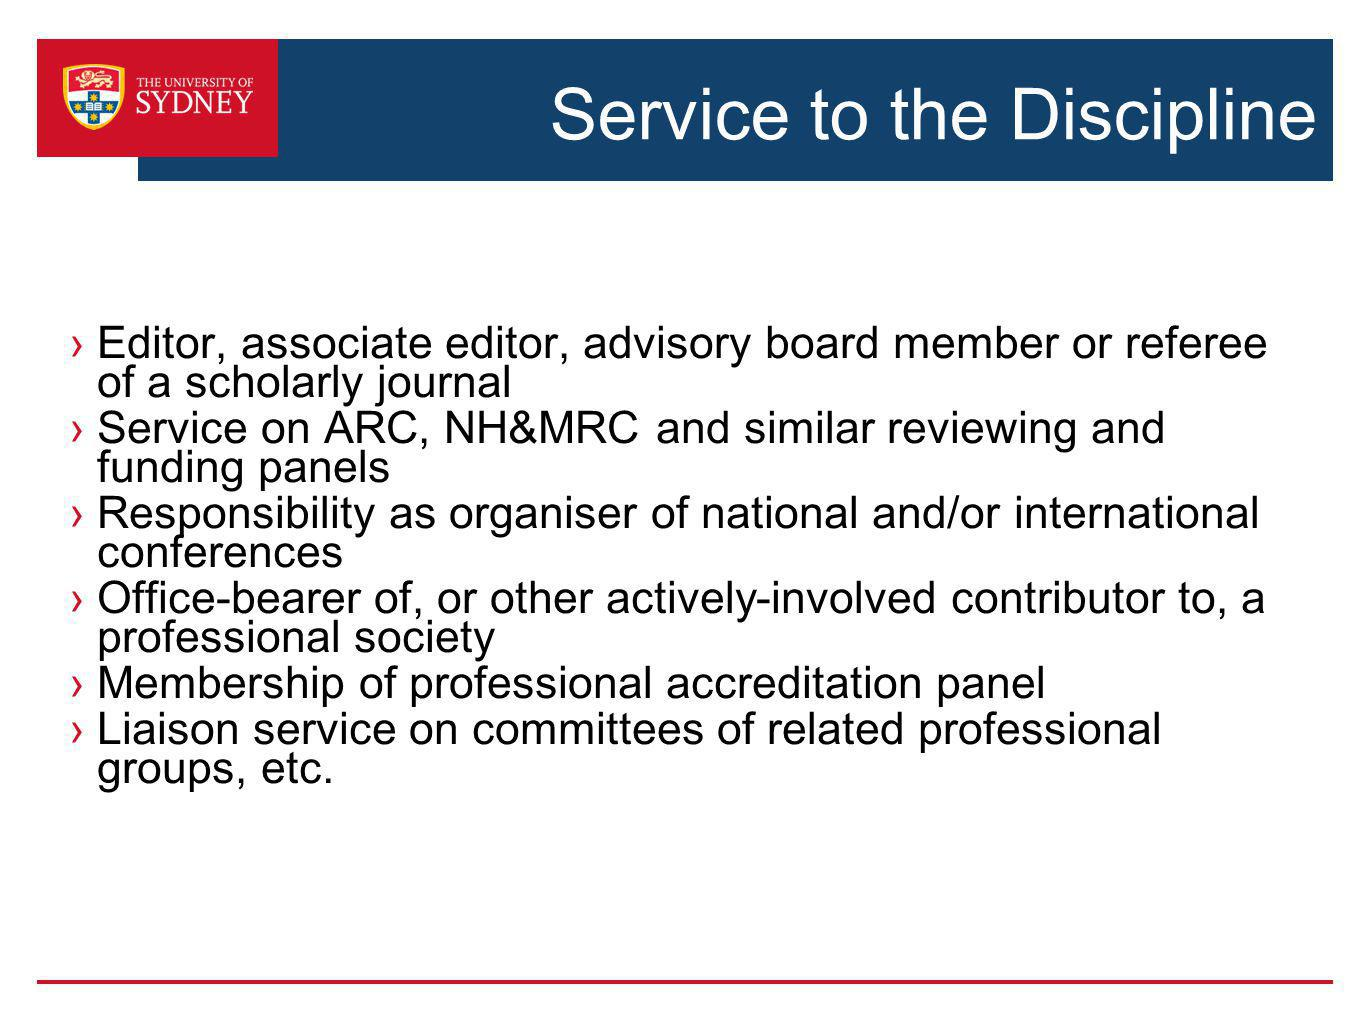 Service to the Discipline Editor, associate editor, advisory board member or referee of a scholarly journal Service on ARC, NH&MRC and similar reviewing and funding panels Responsibility as organiser of national and/or international conferences Office-bearer of, or other actively-involved contributor to, a professional society Membership of professional accreditation panel Liaison service on committees of related professional groups, etc.